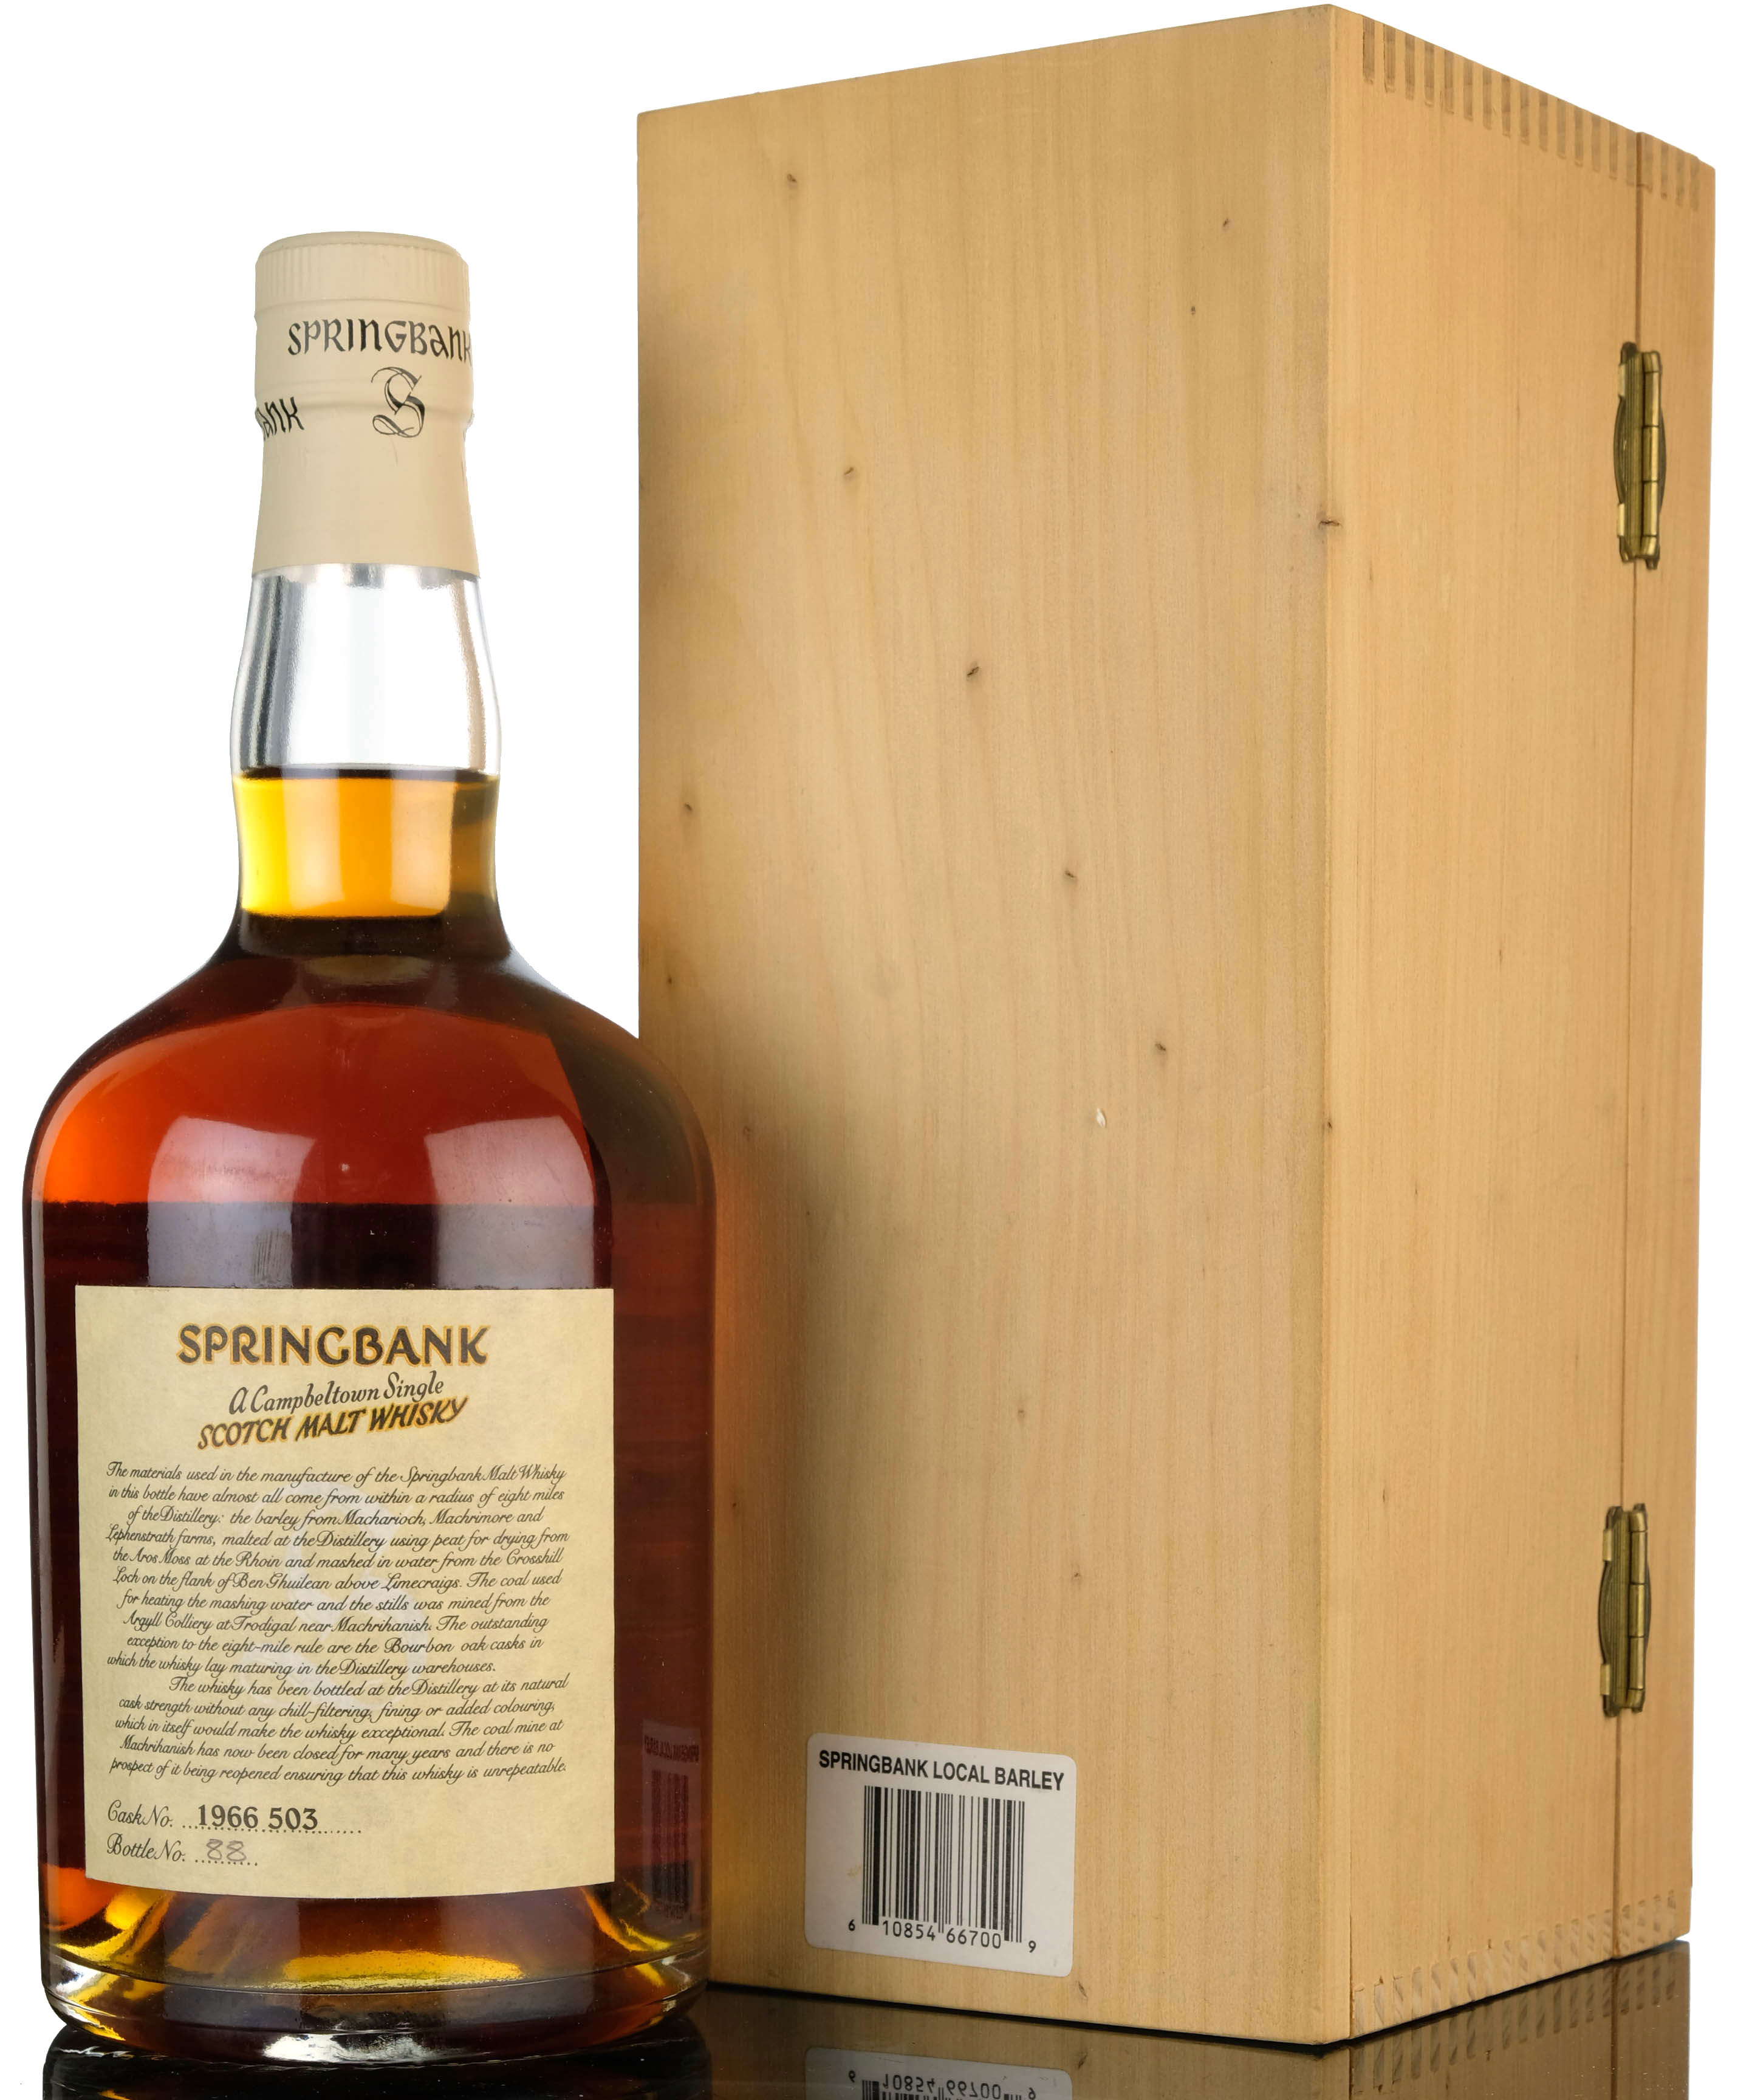 springbank 1966-1999 - local barley - single cask 503